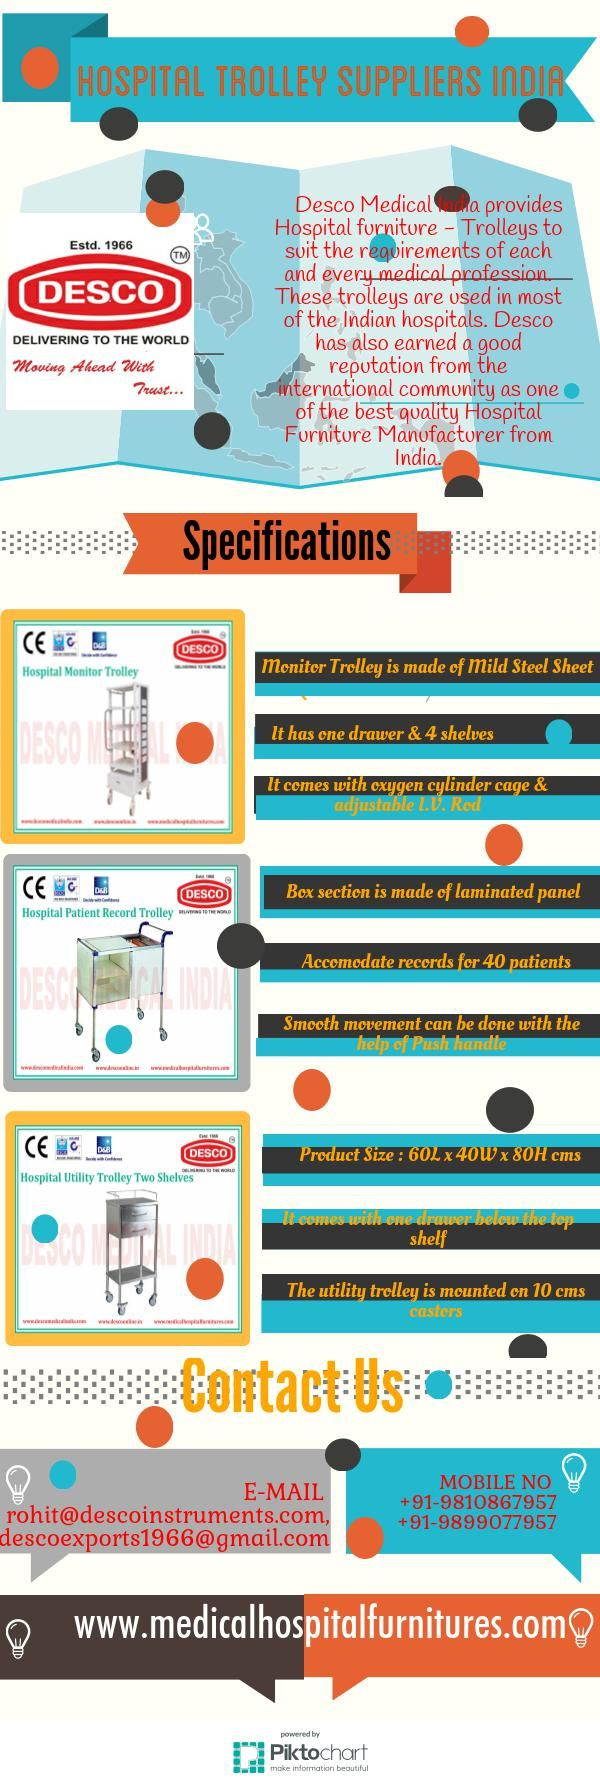 Hospital Emergency trolleys are fitted with basic extensions like IV Rod etc which are used in cases of emergency. For more information click  http://goo.gl/z9kgNE